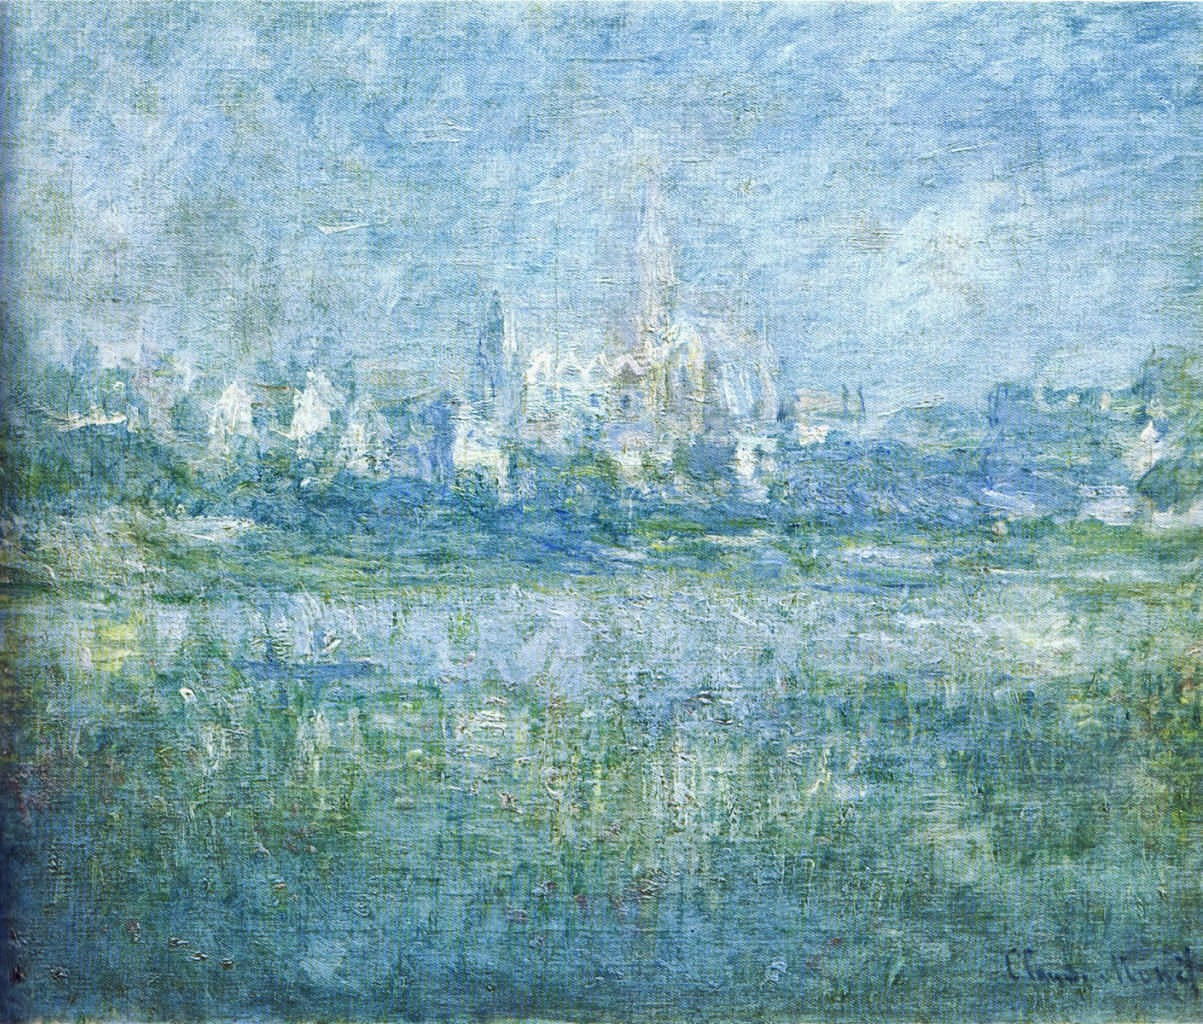 Impressionism Paris: ART & ARTISTS: Claude Monet